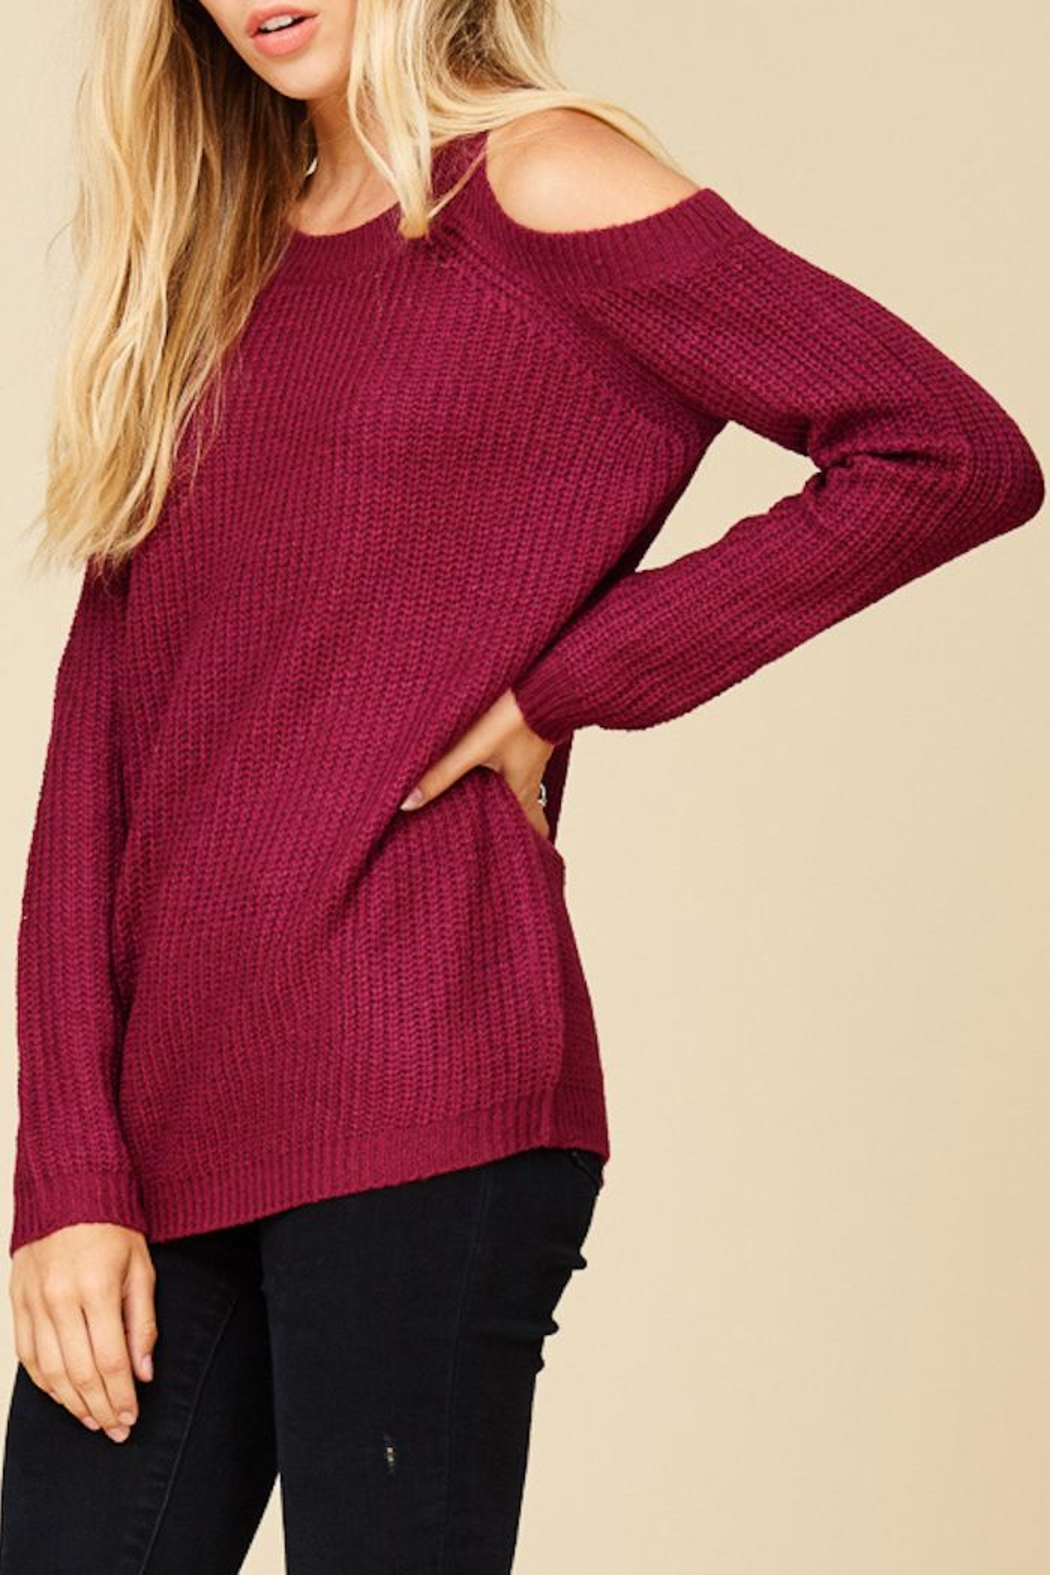 Staccato Berry Bright Sweater - Main Image